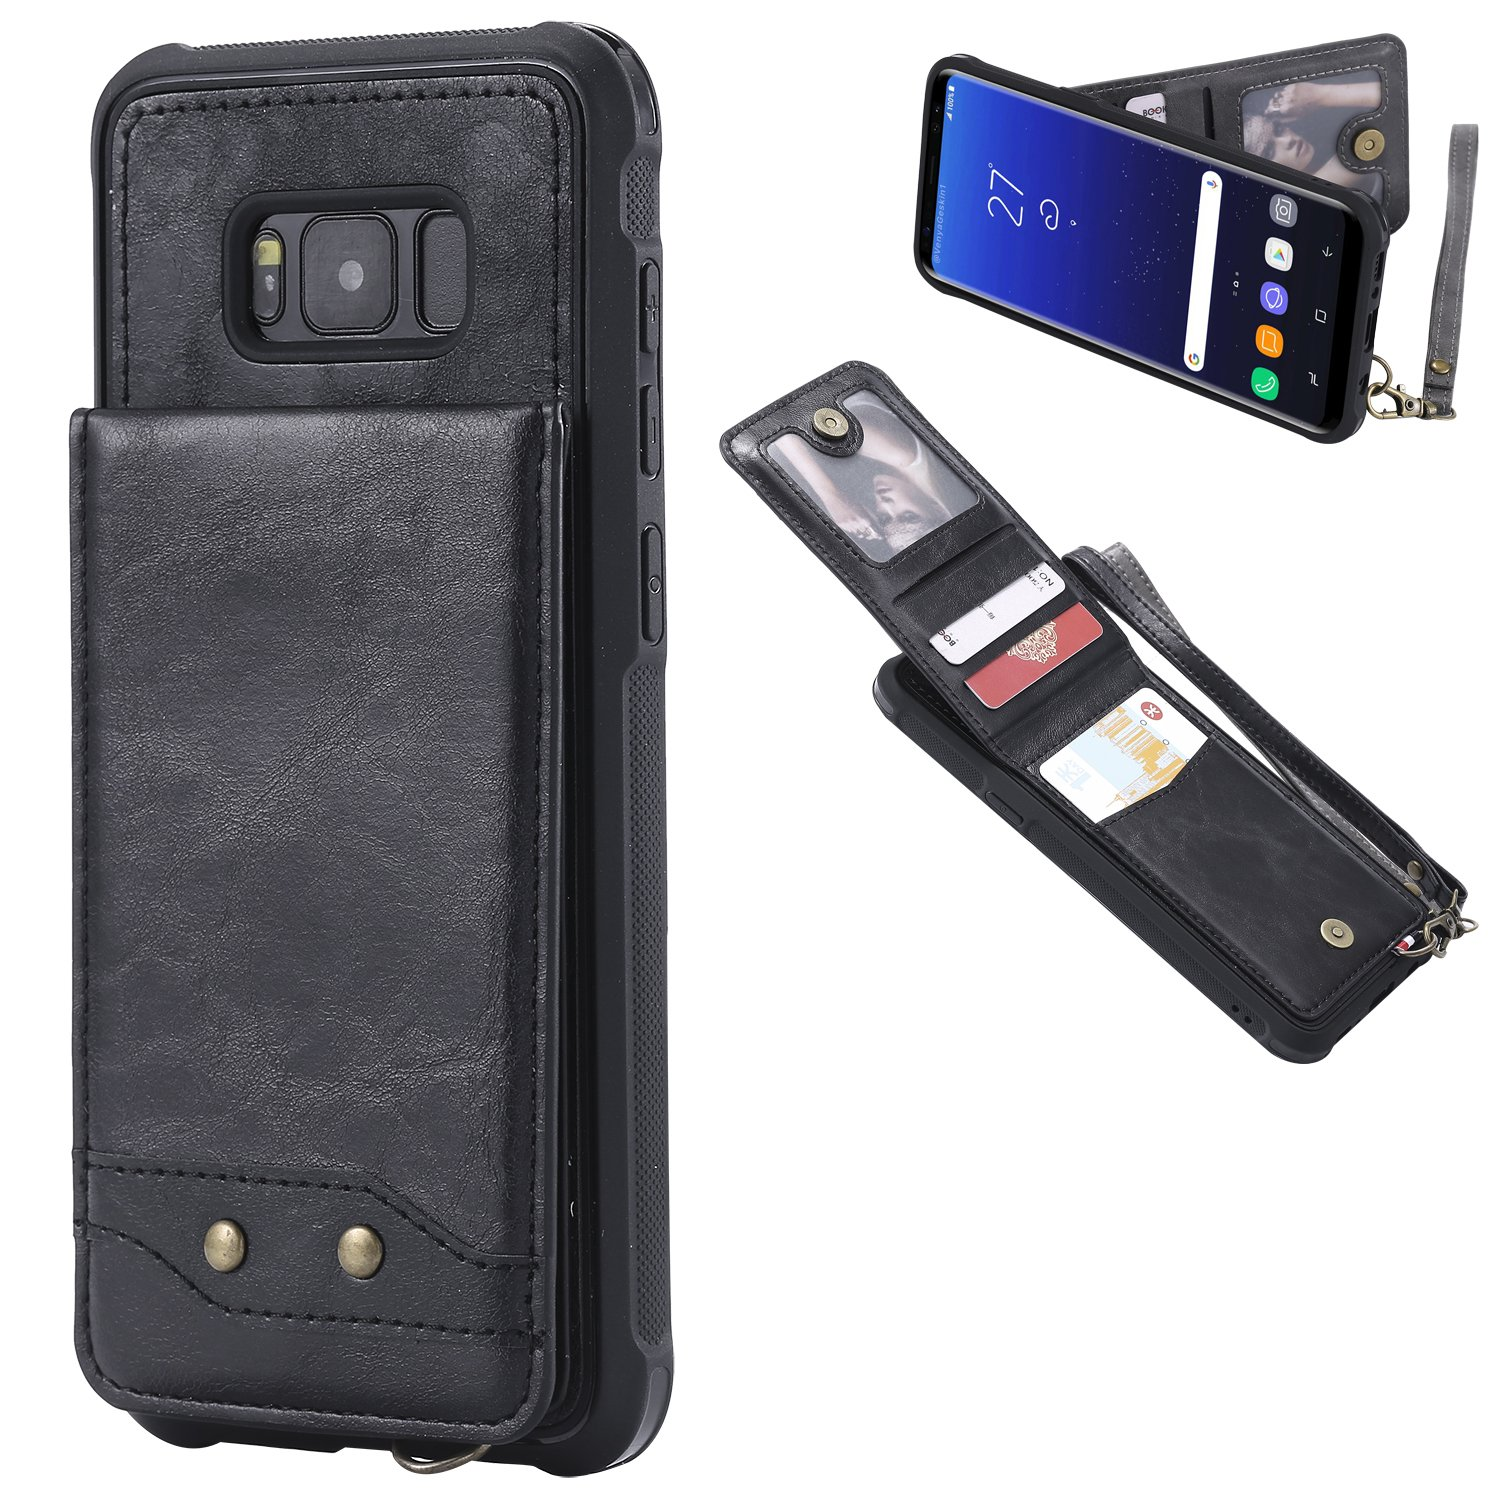 DAMONDY Galaxy S8 Plus Case, Luxury Wallet Purse Card Holders Design Cover Soft Shockproof Bumper Flip Leather Kickstand Magnetic Clasp With Wrist Strap Case for Samsung Galaxy S8 Plus-black